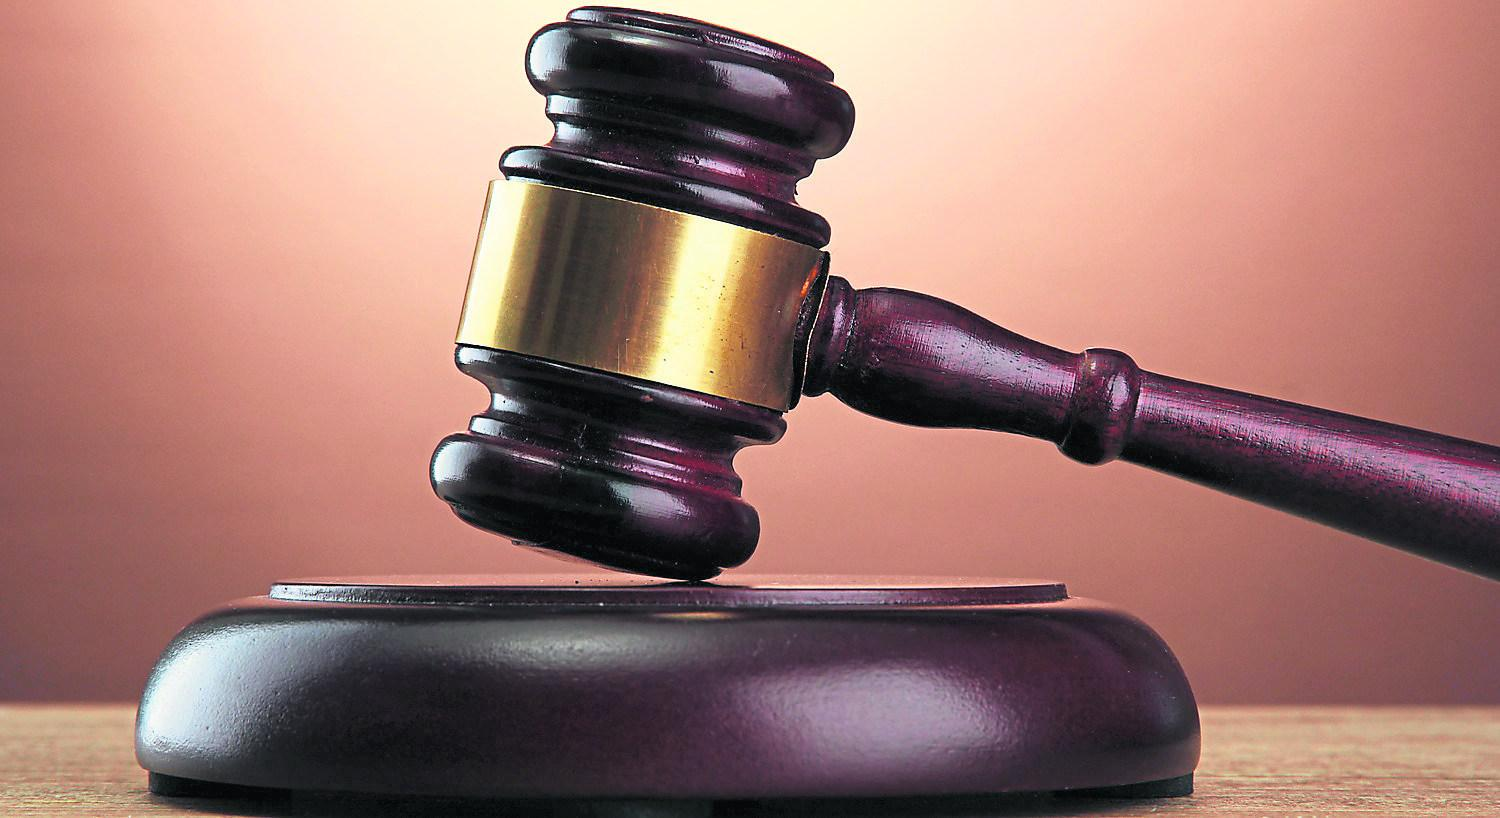 Father sentenced to jail for defiling own daughter